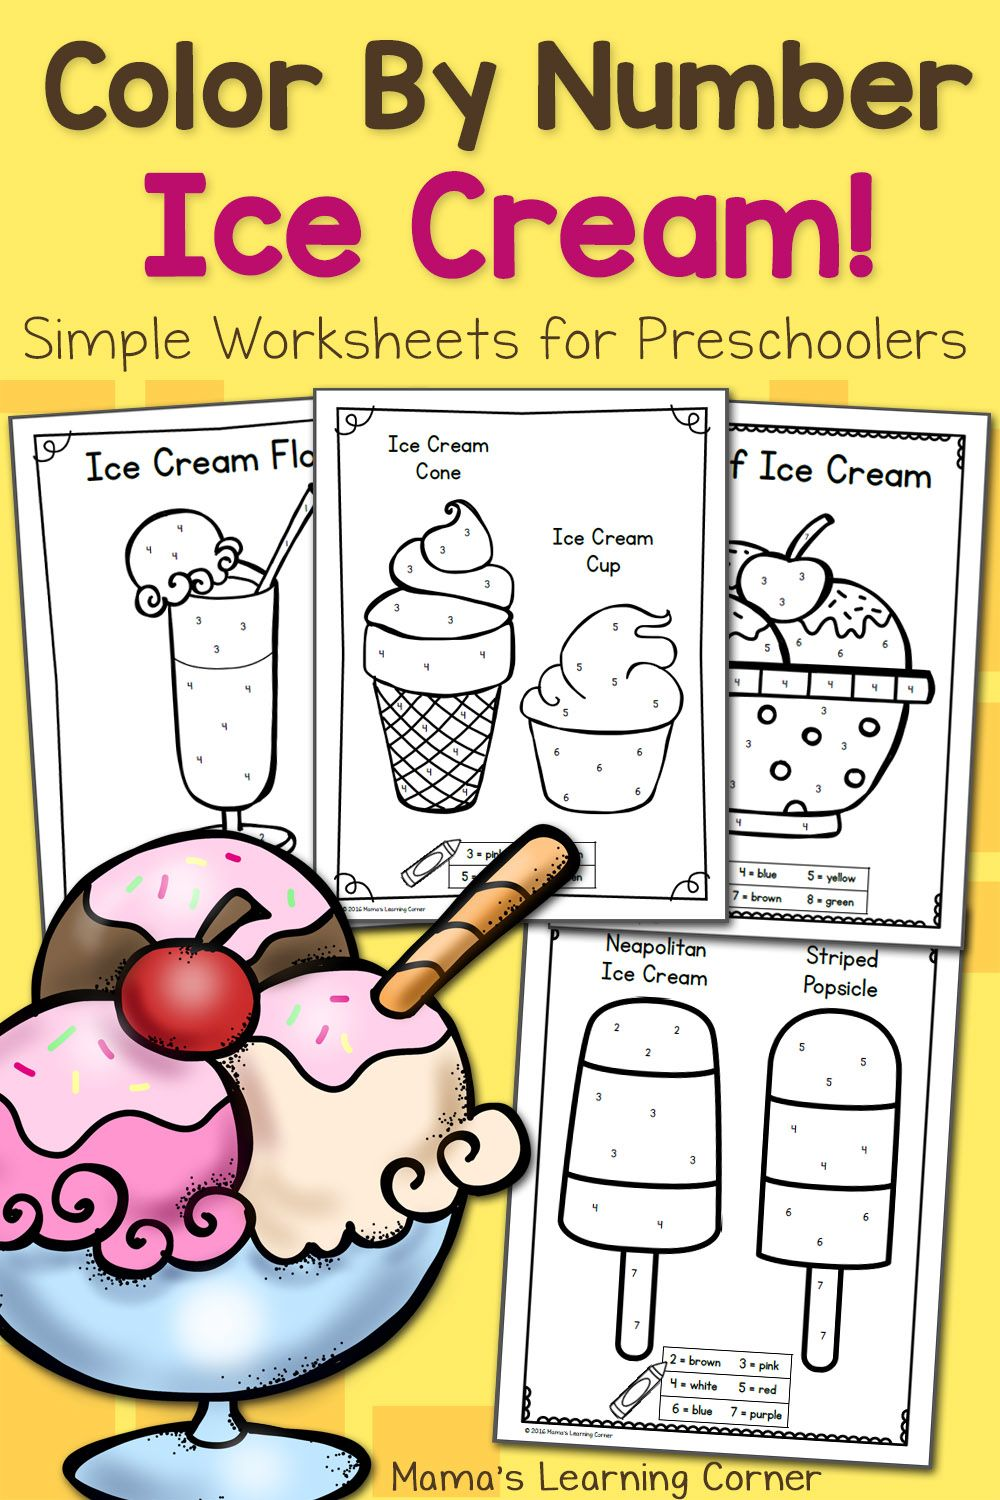 Color By Number Worksheets for Preschool Ice Cream